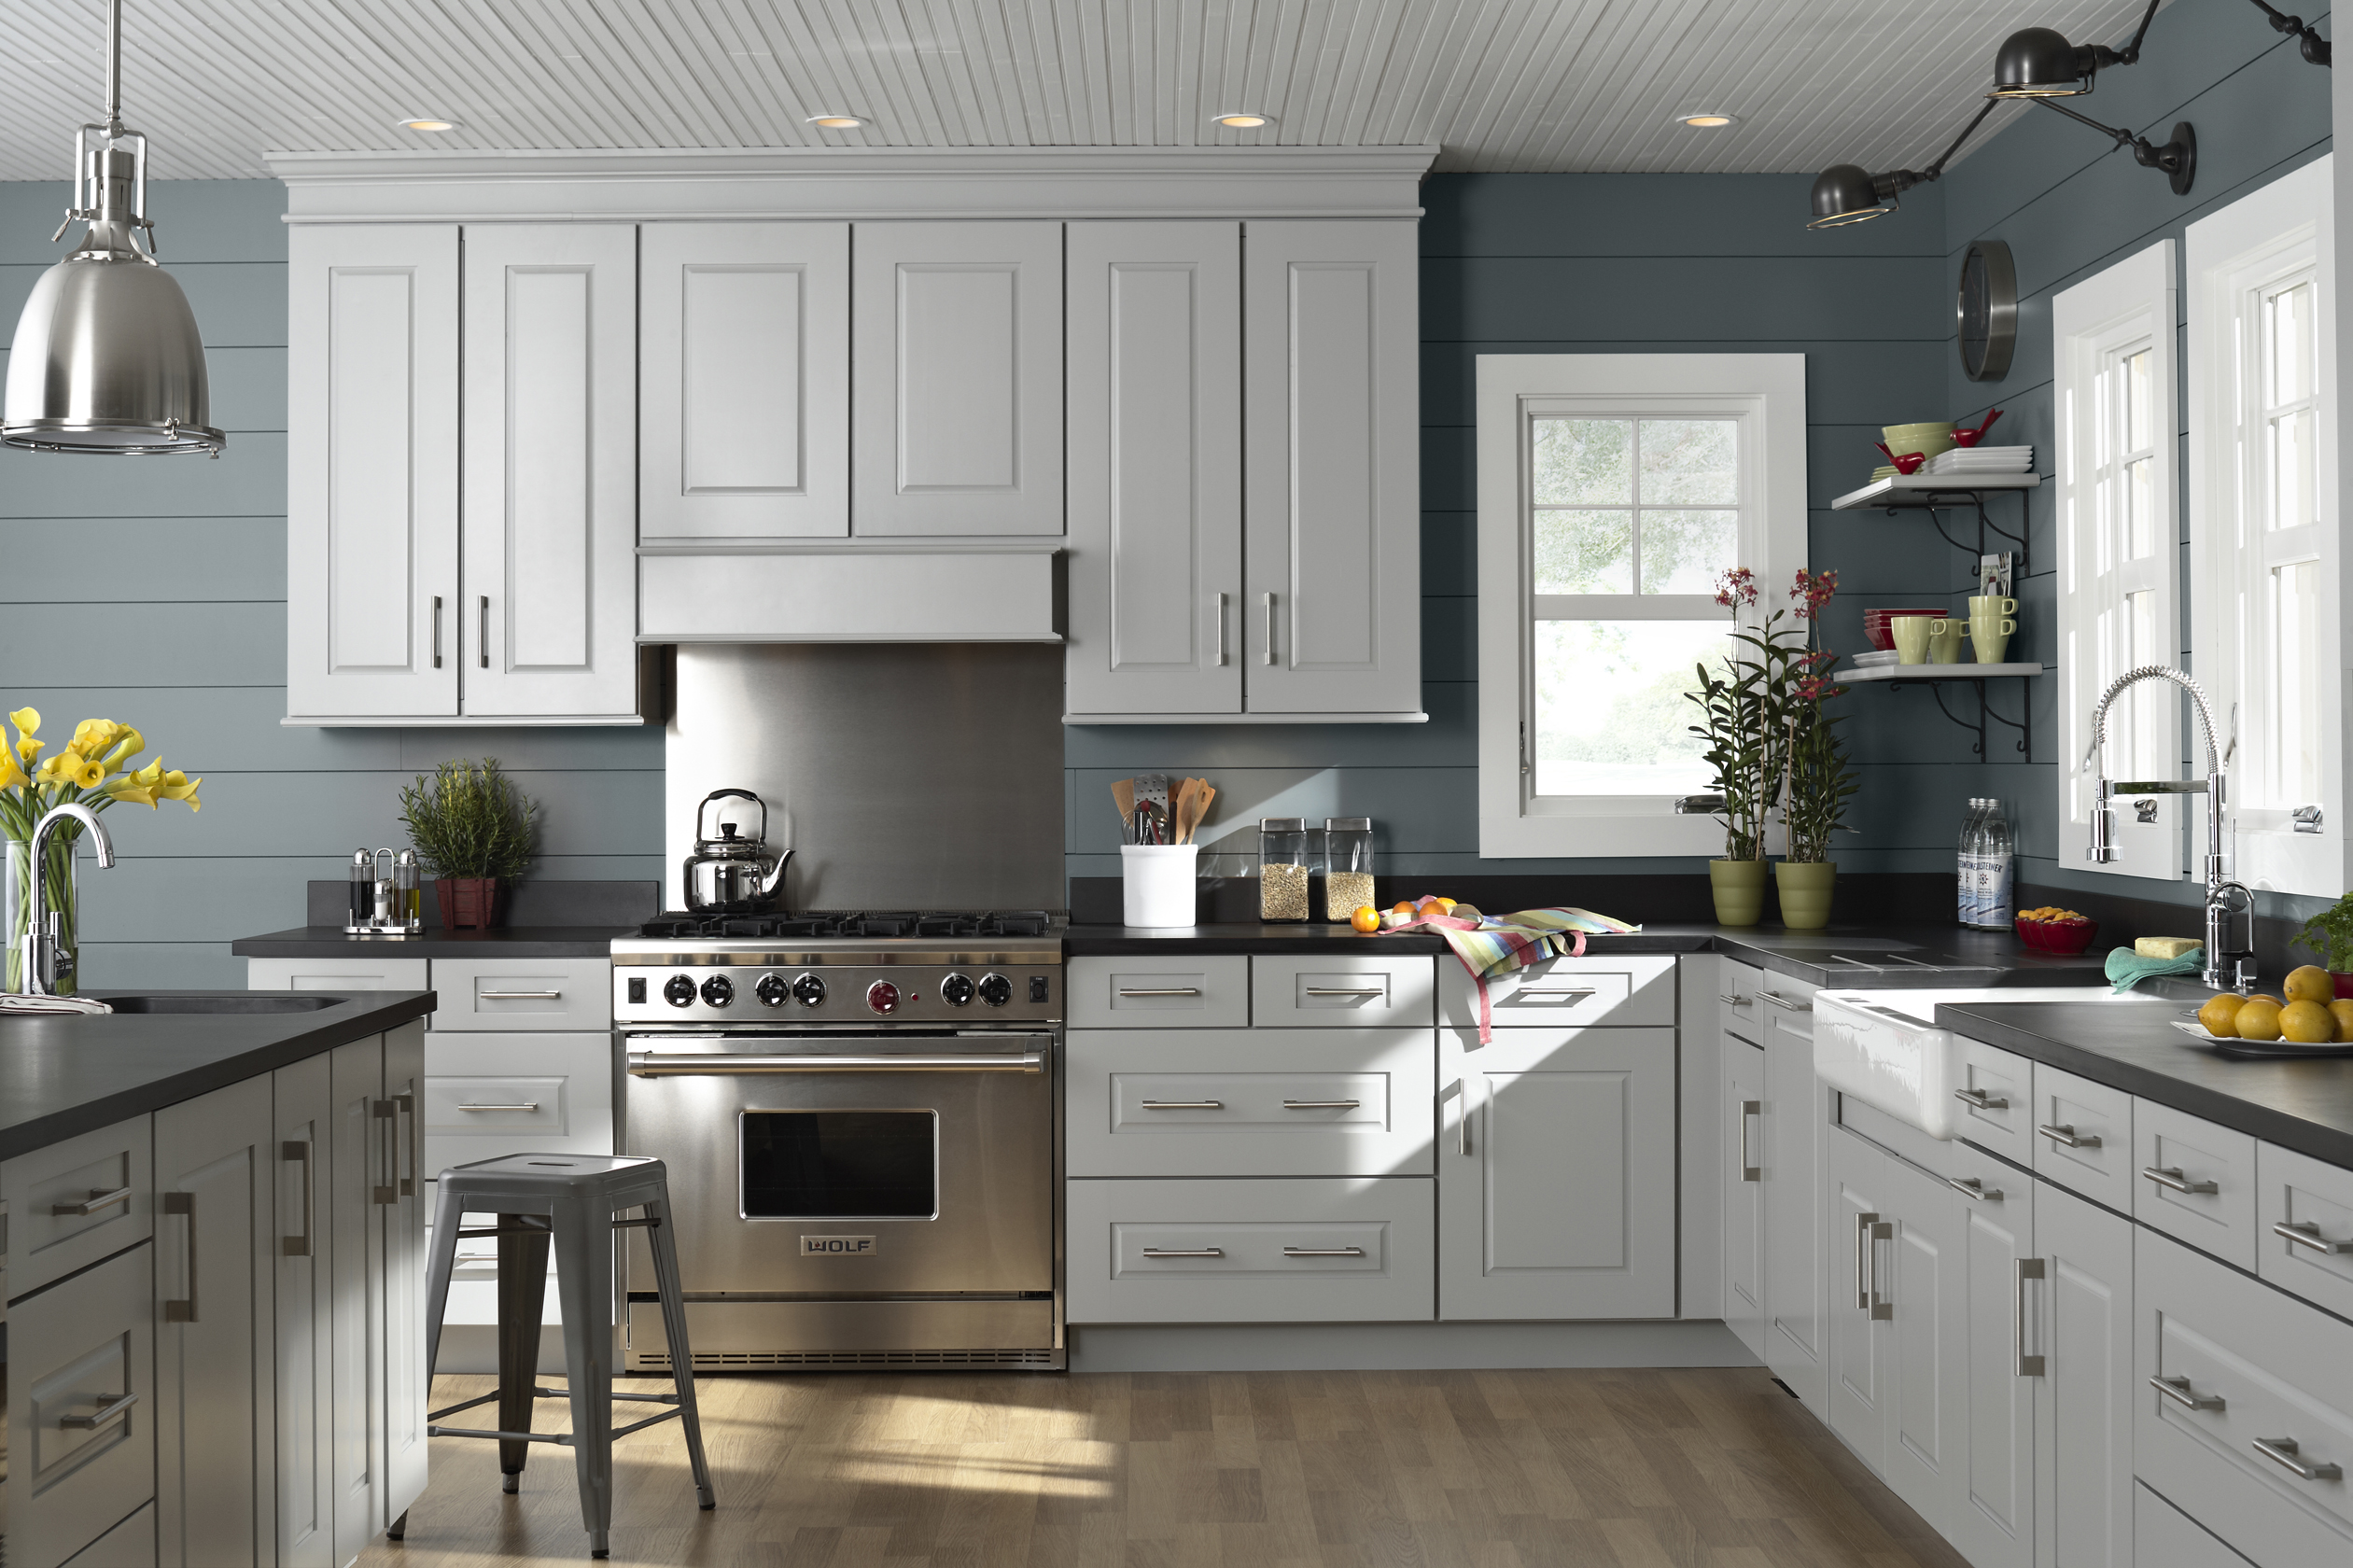 Kitchen cabinets 101 styles tampa flooring company for Kitchen cabinets 101